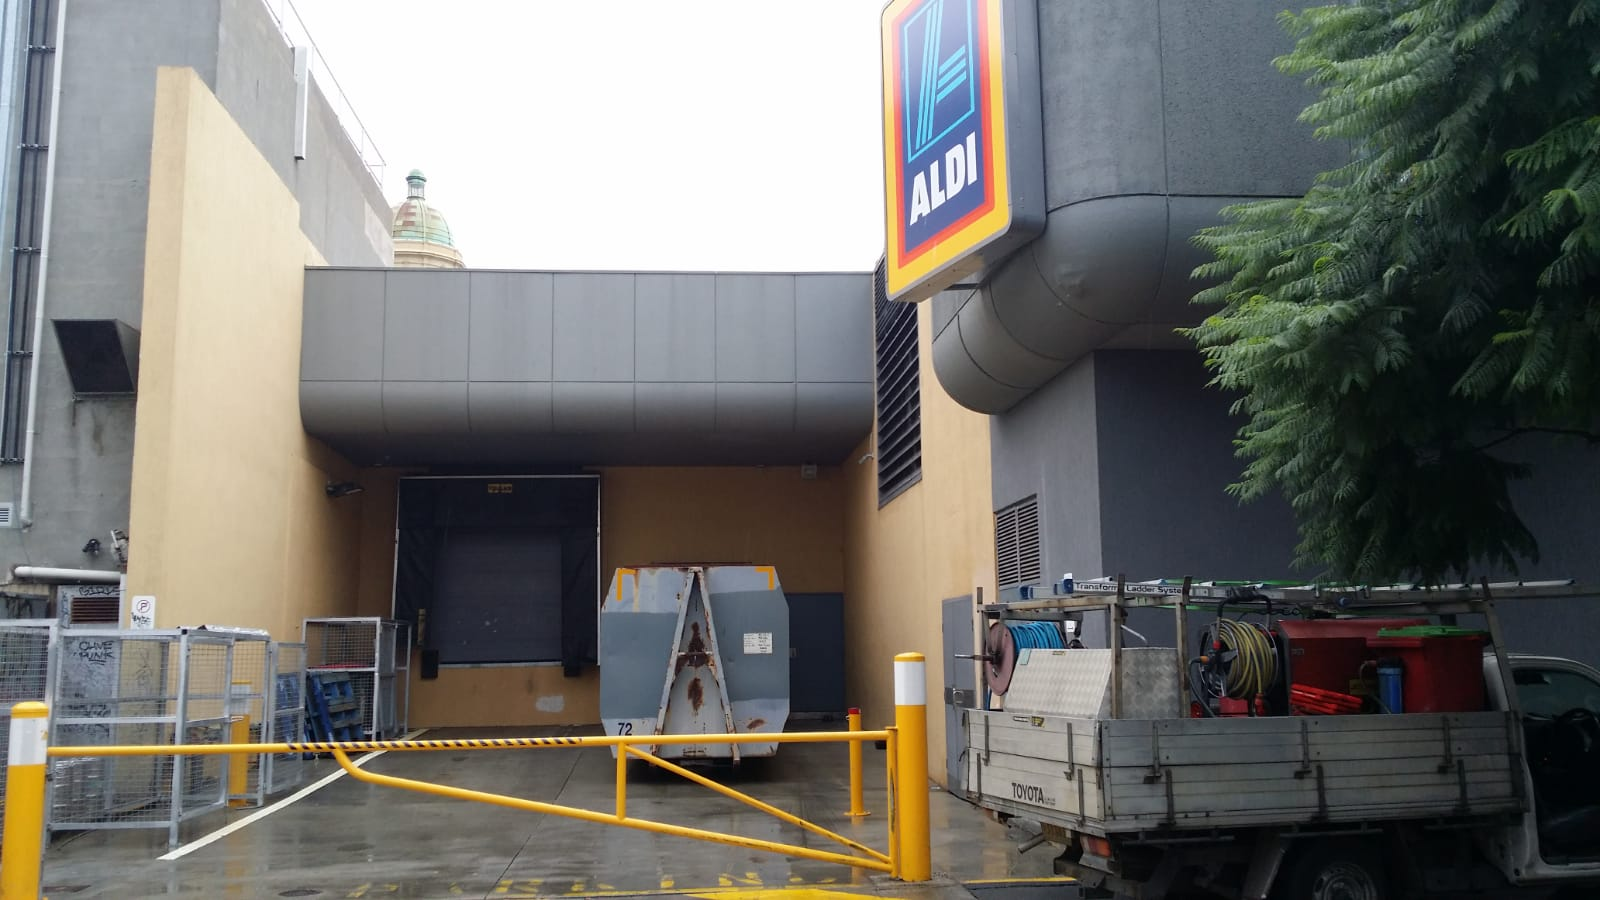 Aldi Prahan, Pressure wash cleaning